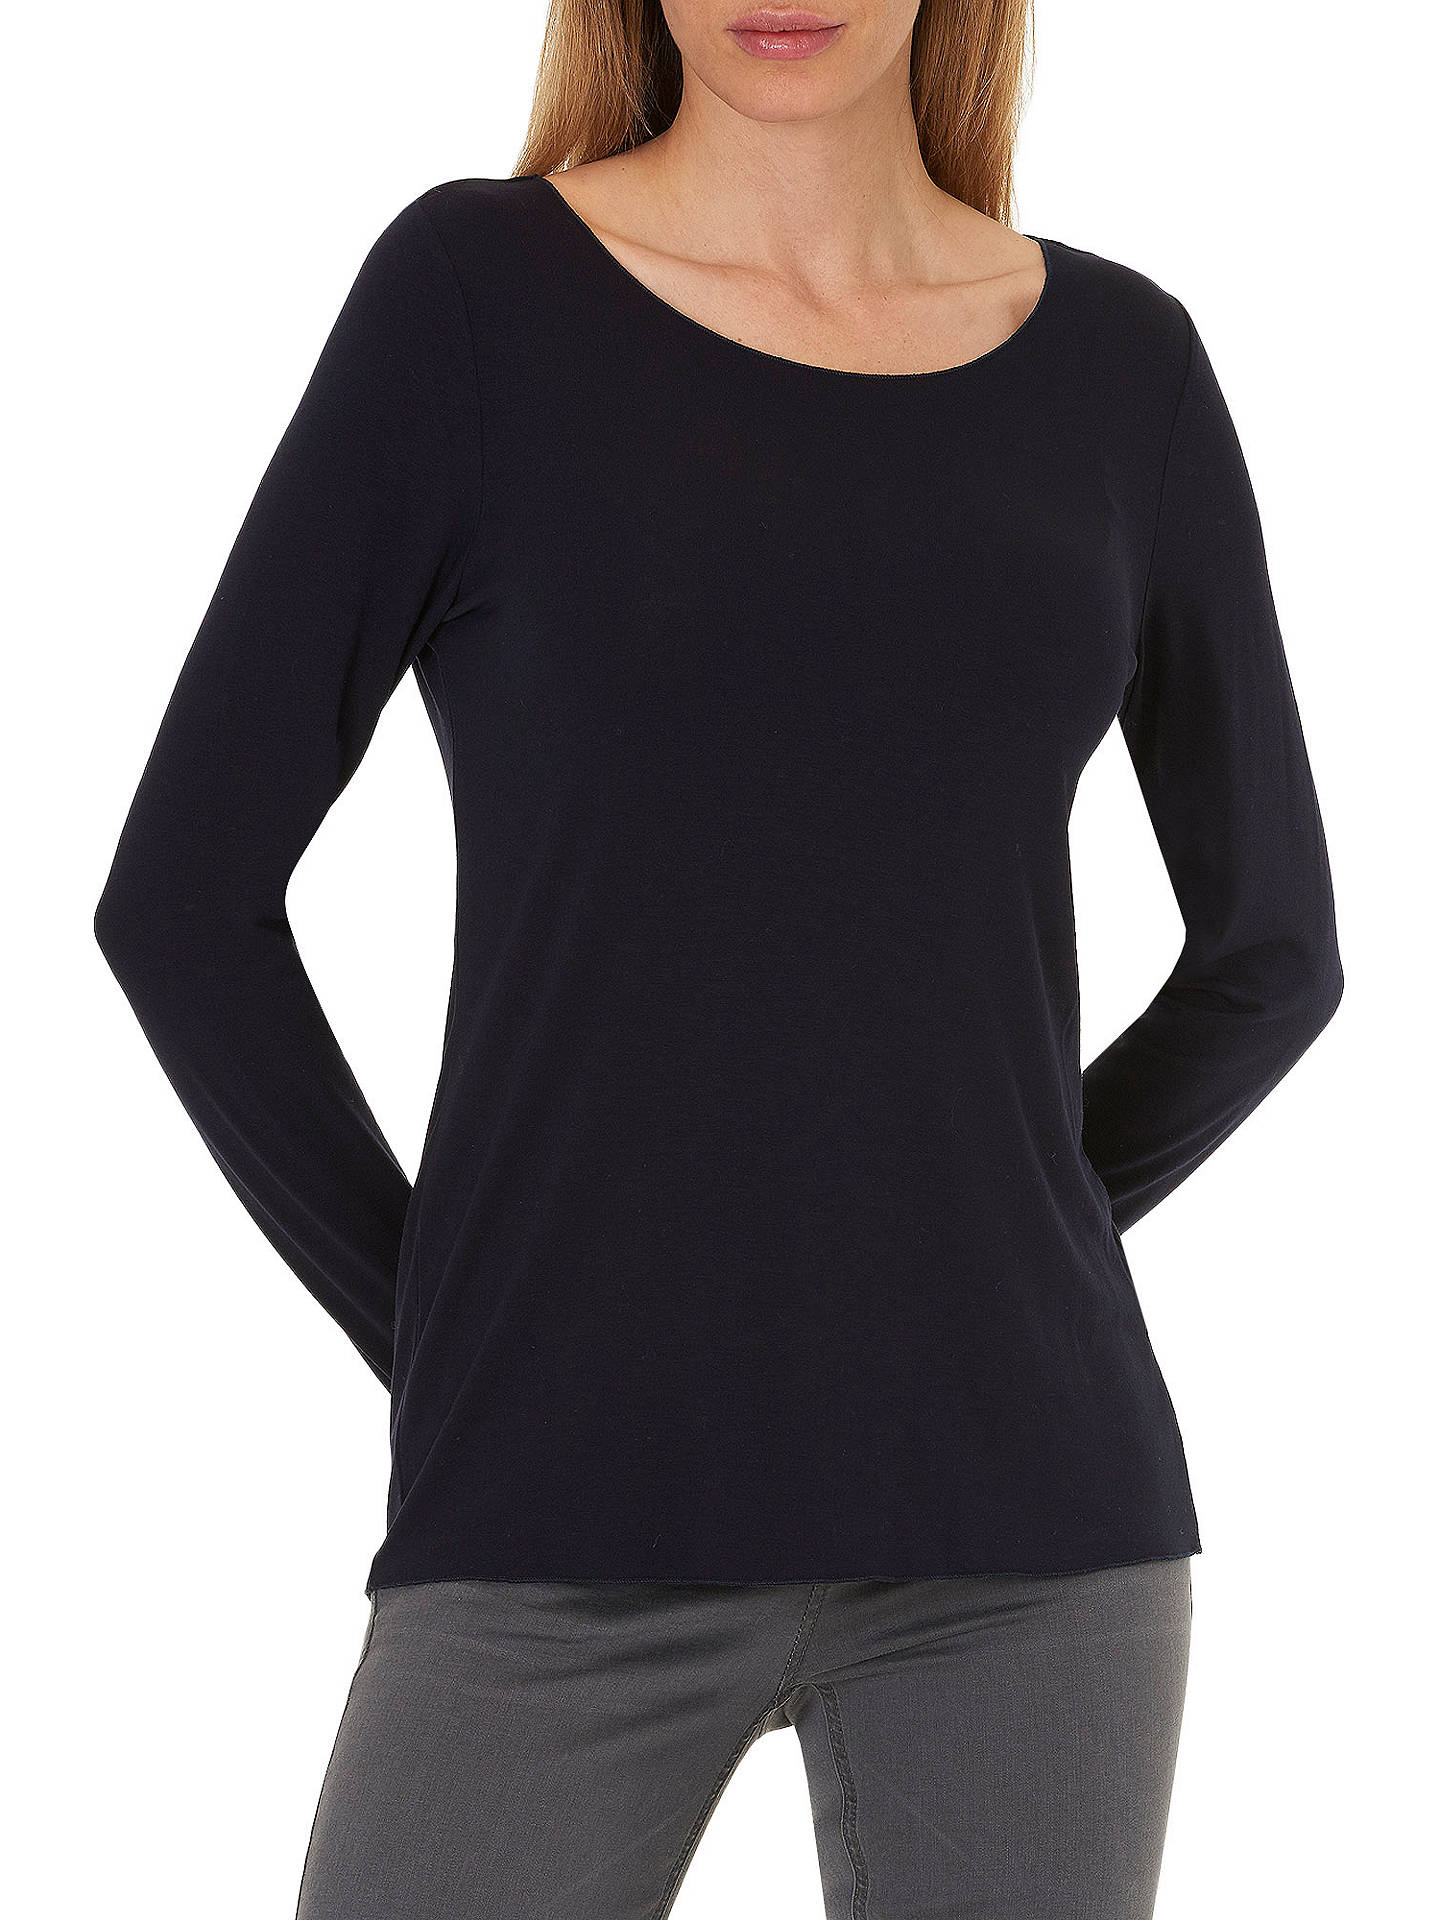 BuyBetty & Co. Long Sleeve T-Shirt, Dark Sapphire, S Online at johnlewis.com